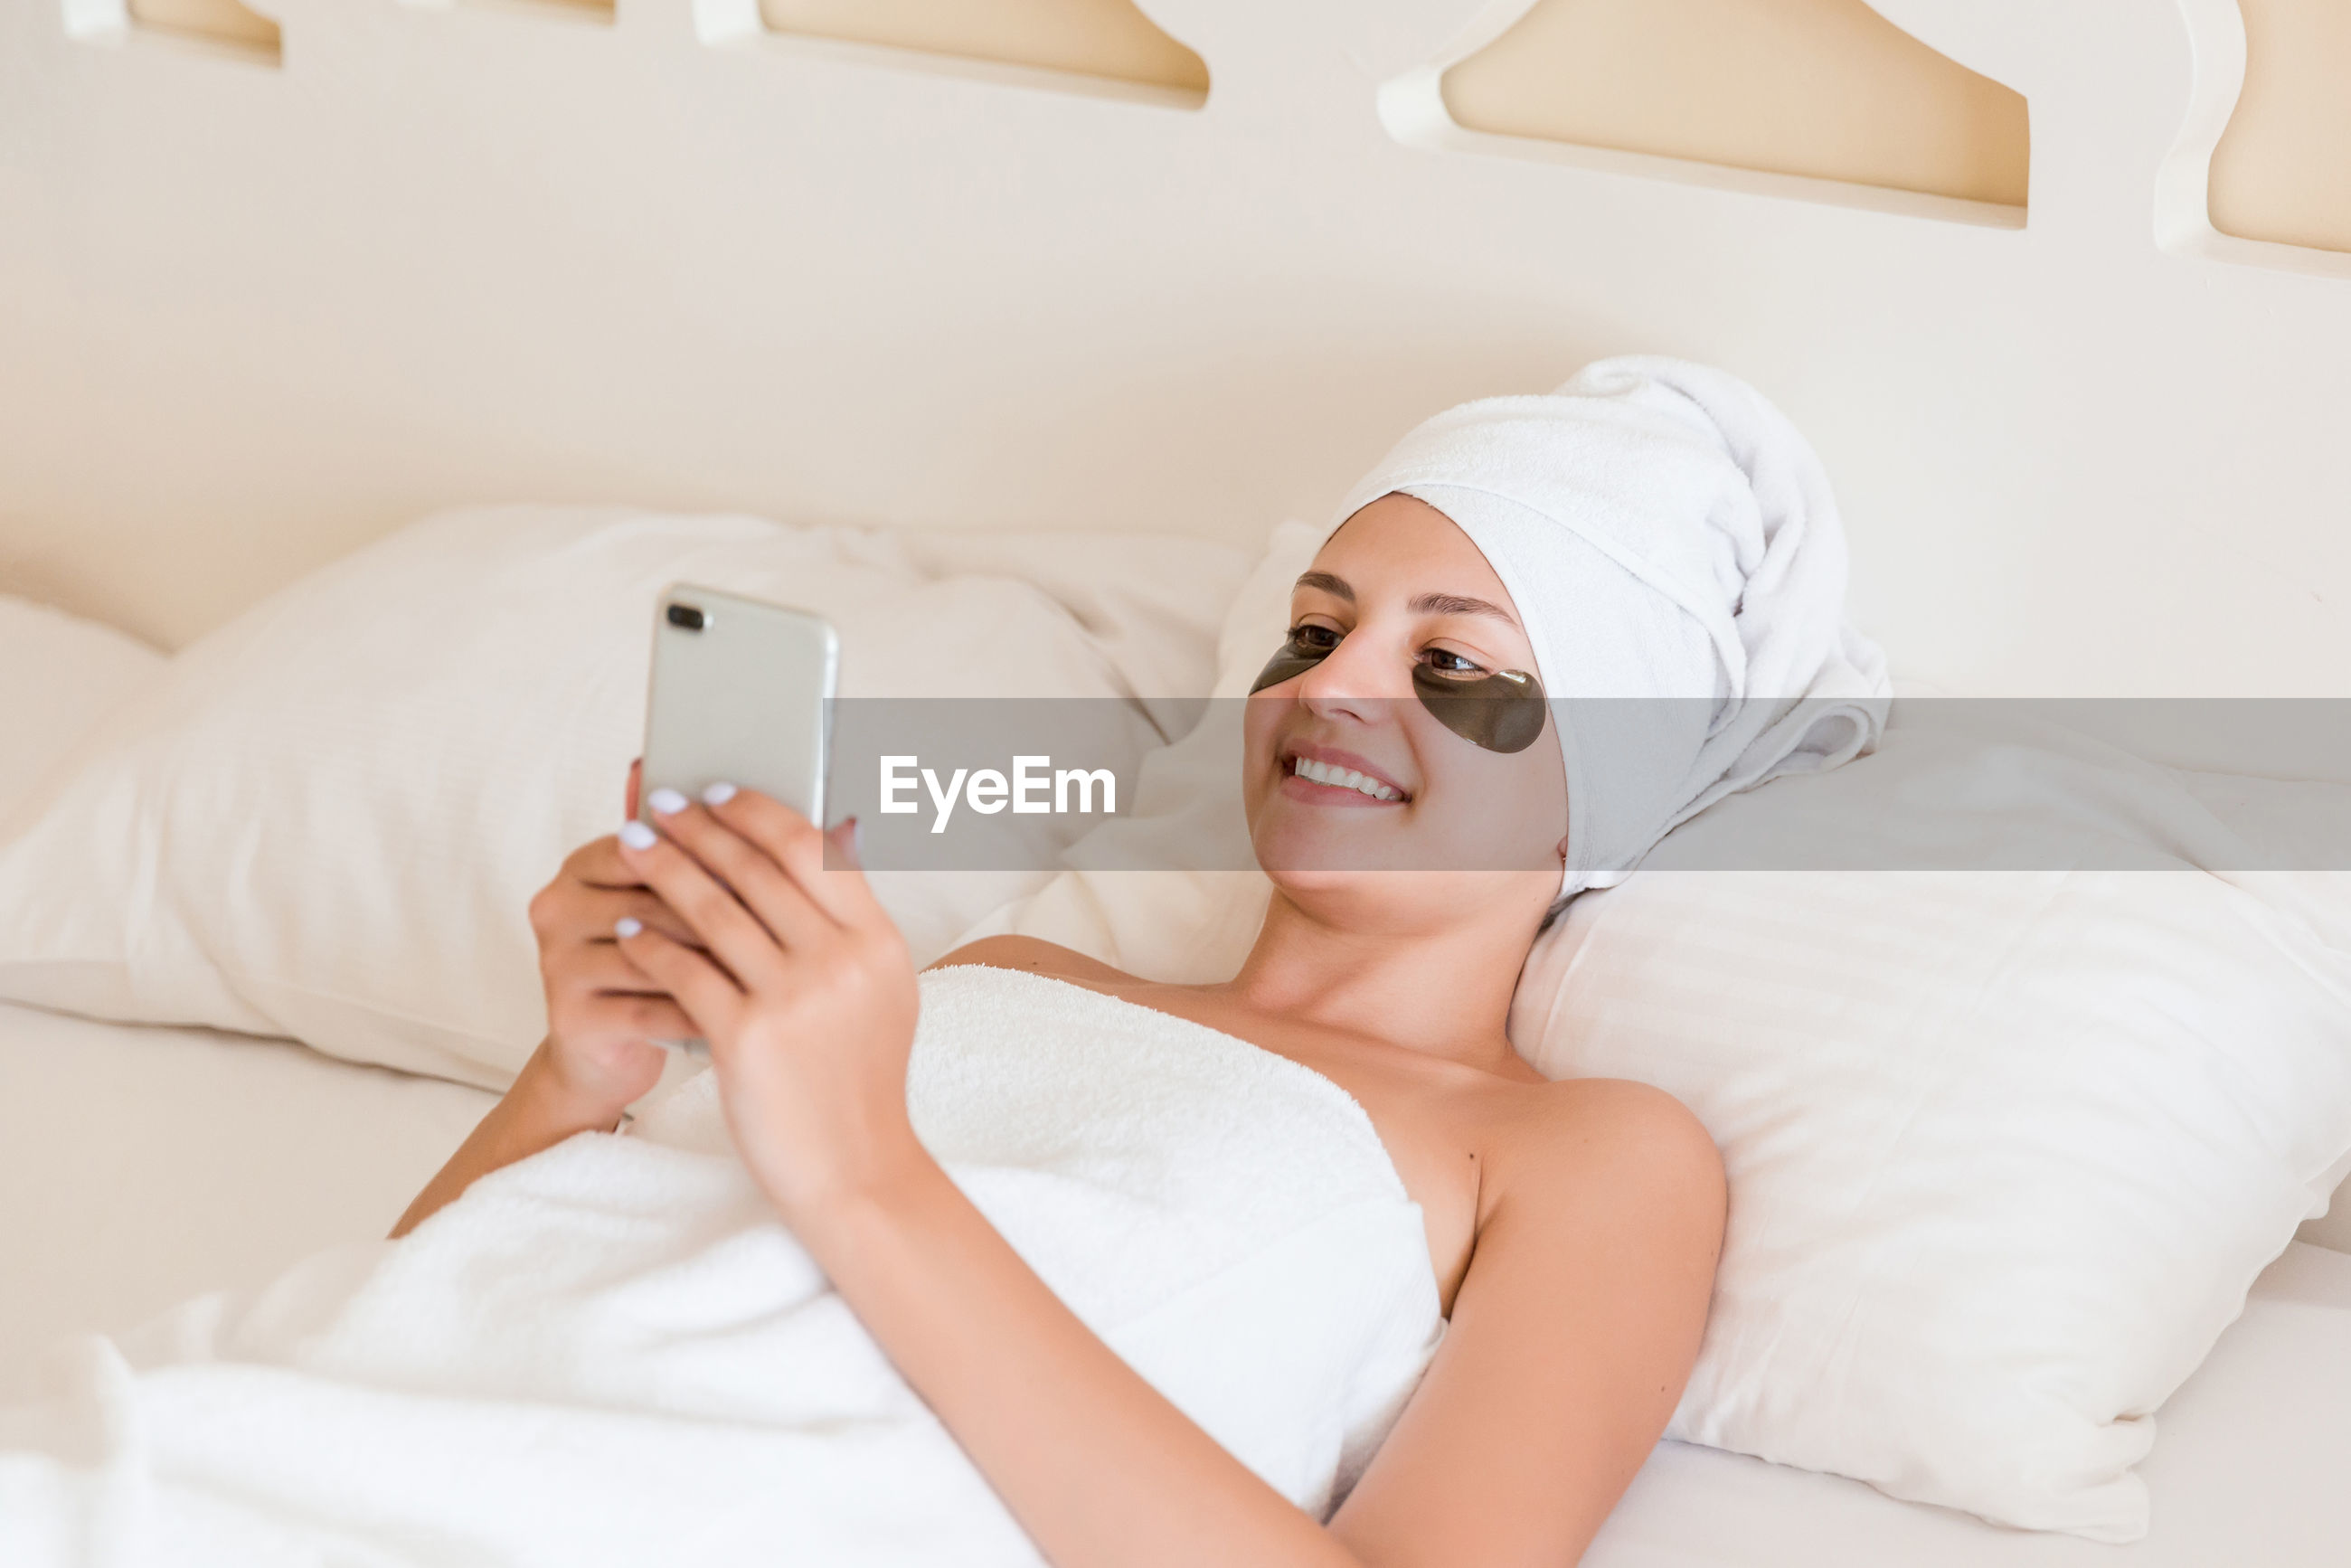 Smiling young woman with under eye patches using mobile phone on bed at spa